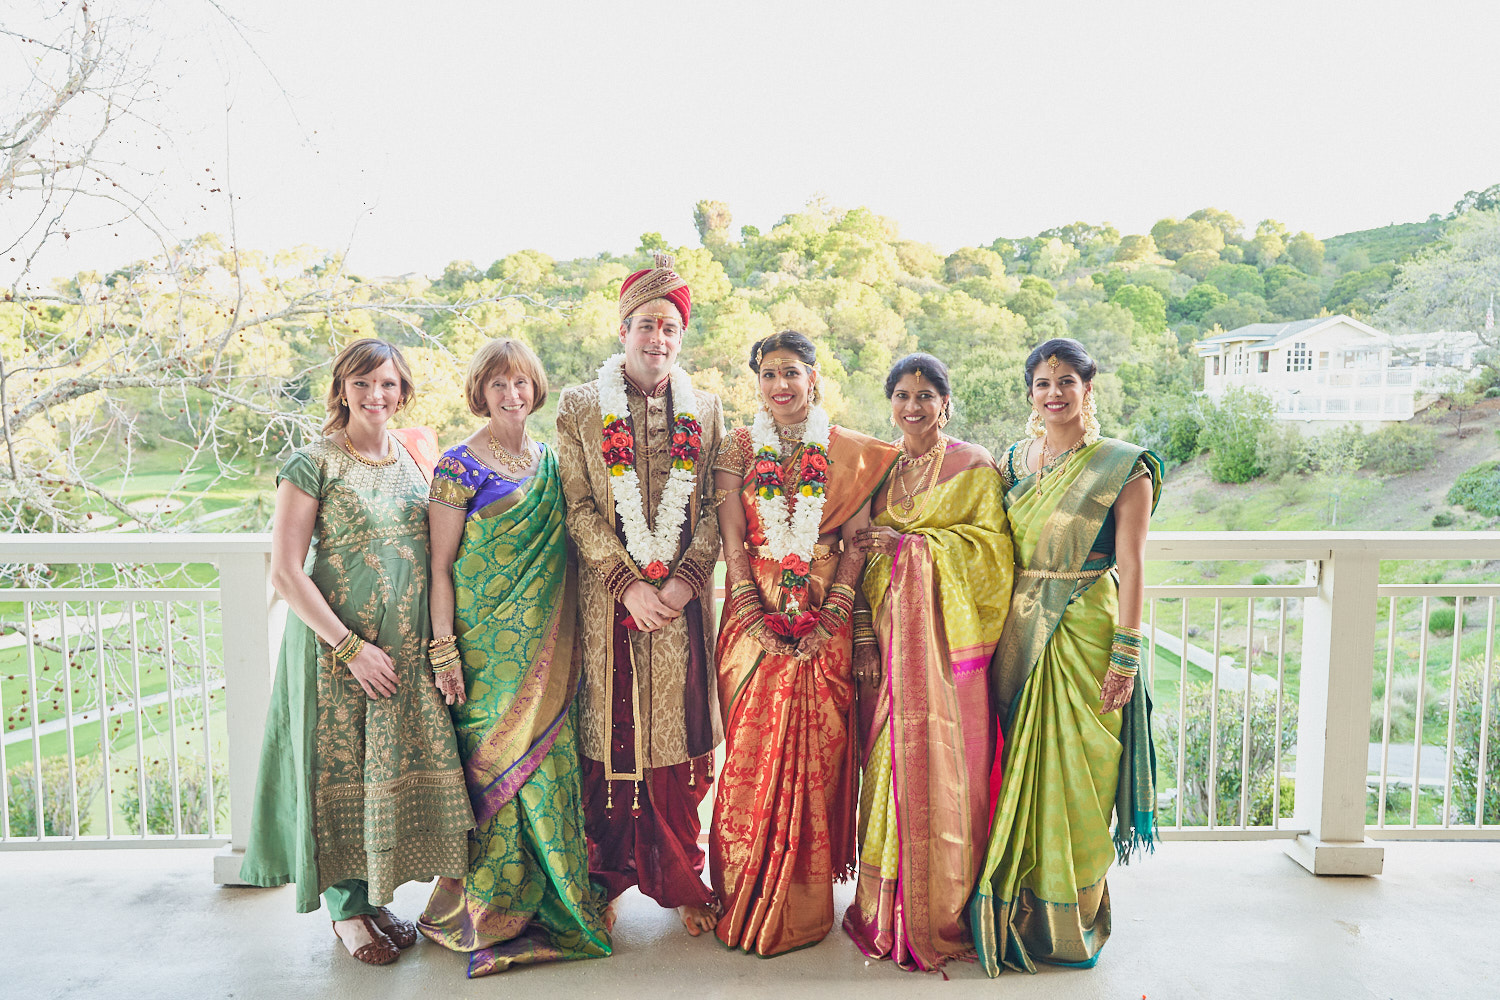 south-indian-wedding-ceremony-photography-by-afewgoodclicks-net-in-saratoga 292.jpg